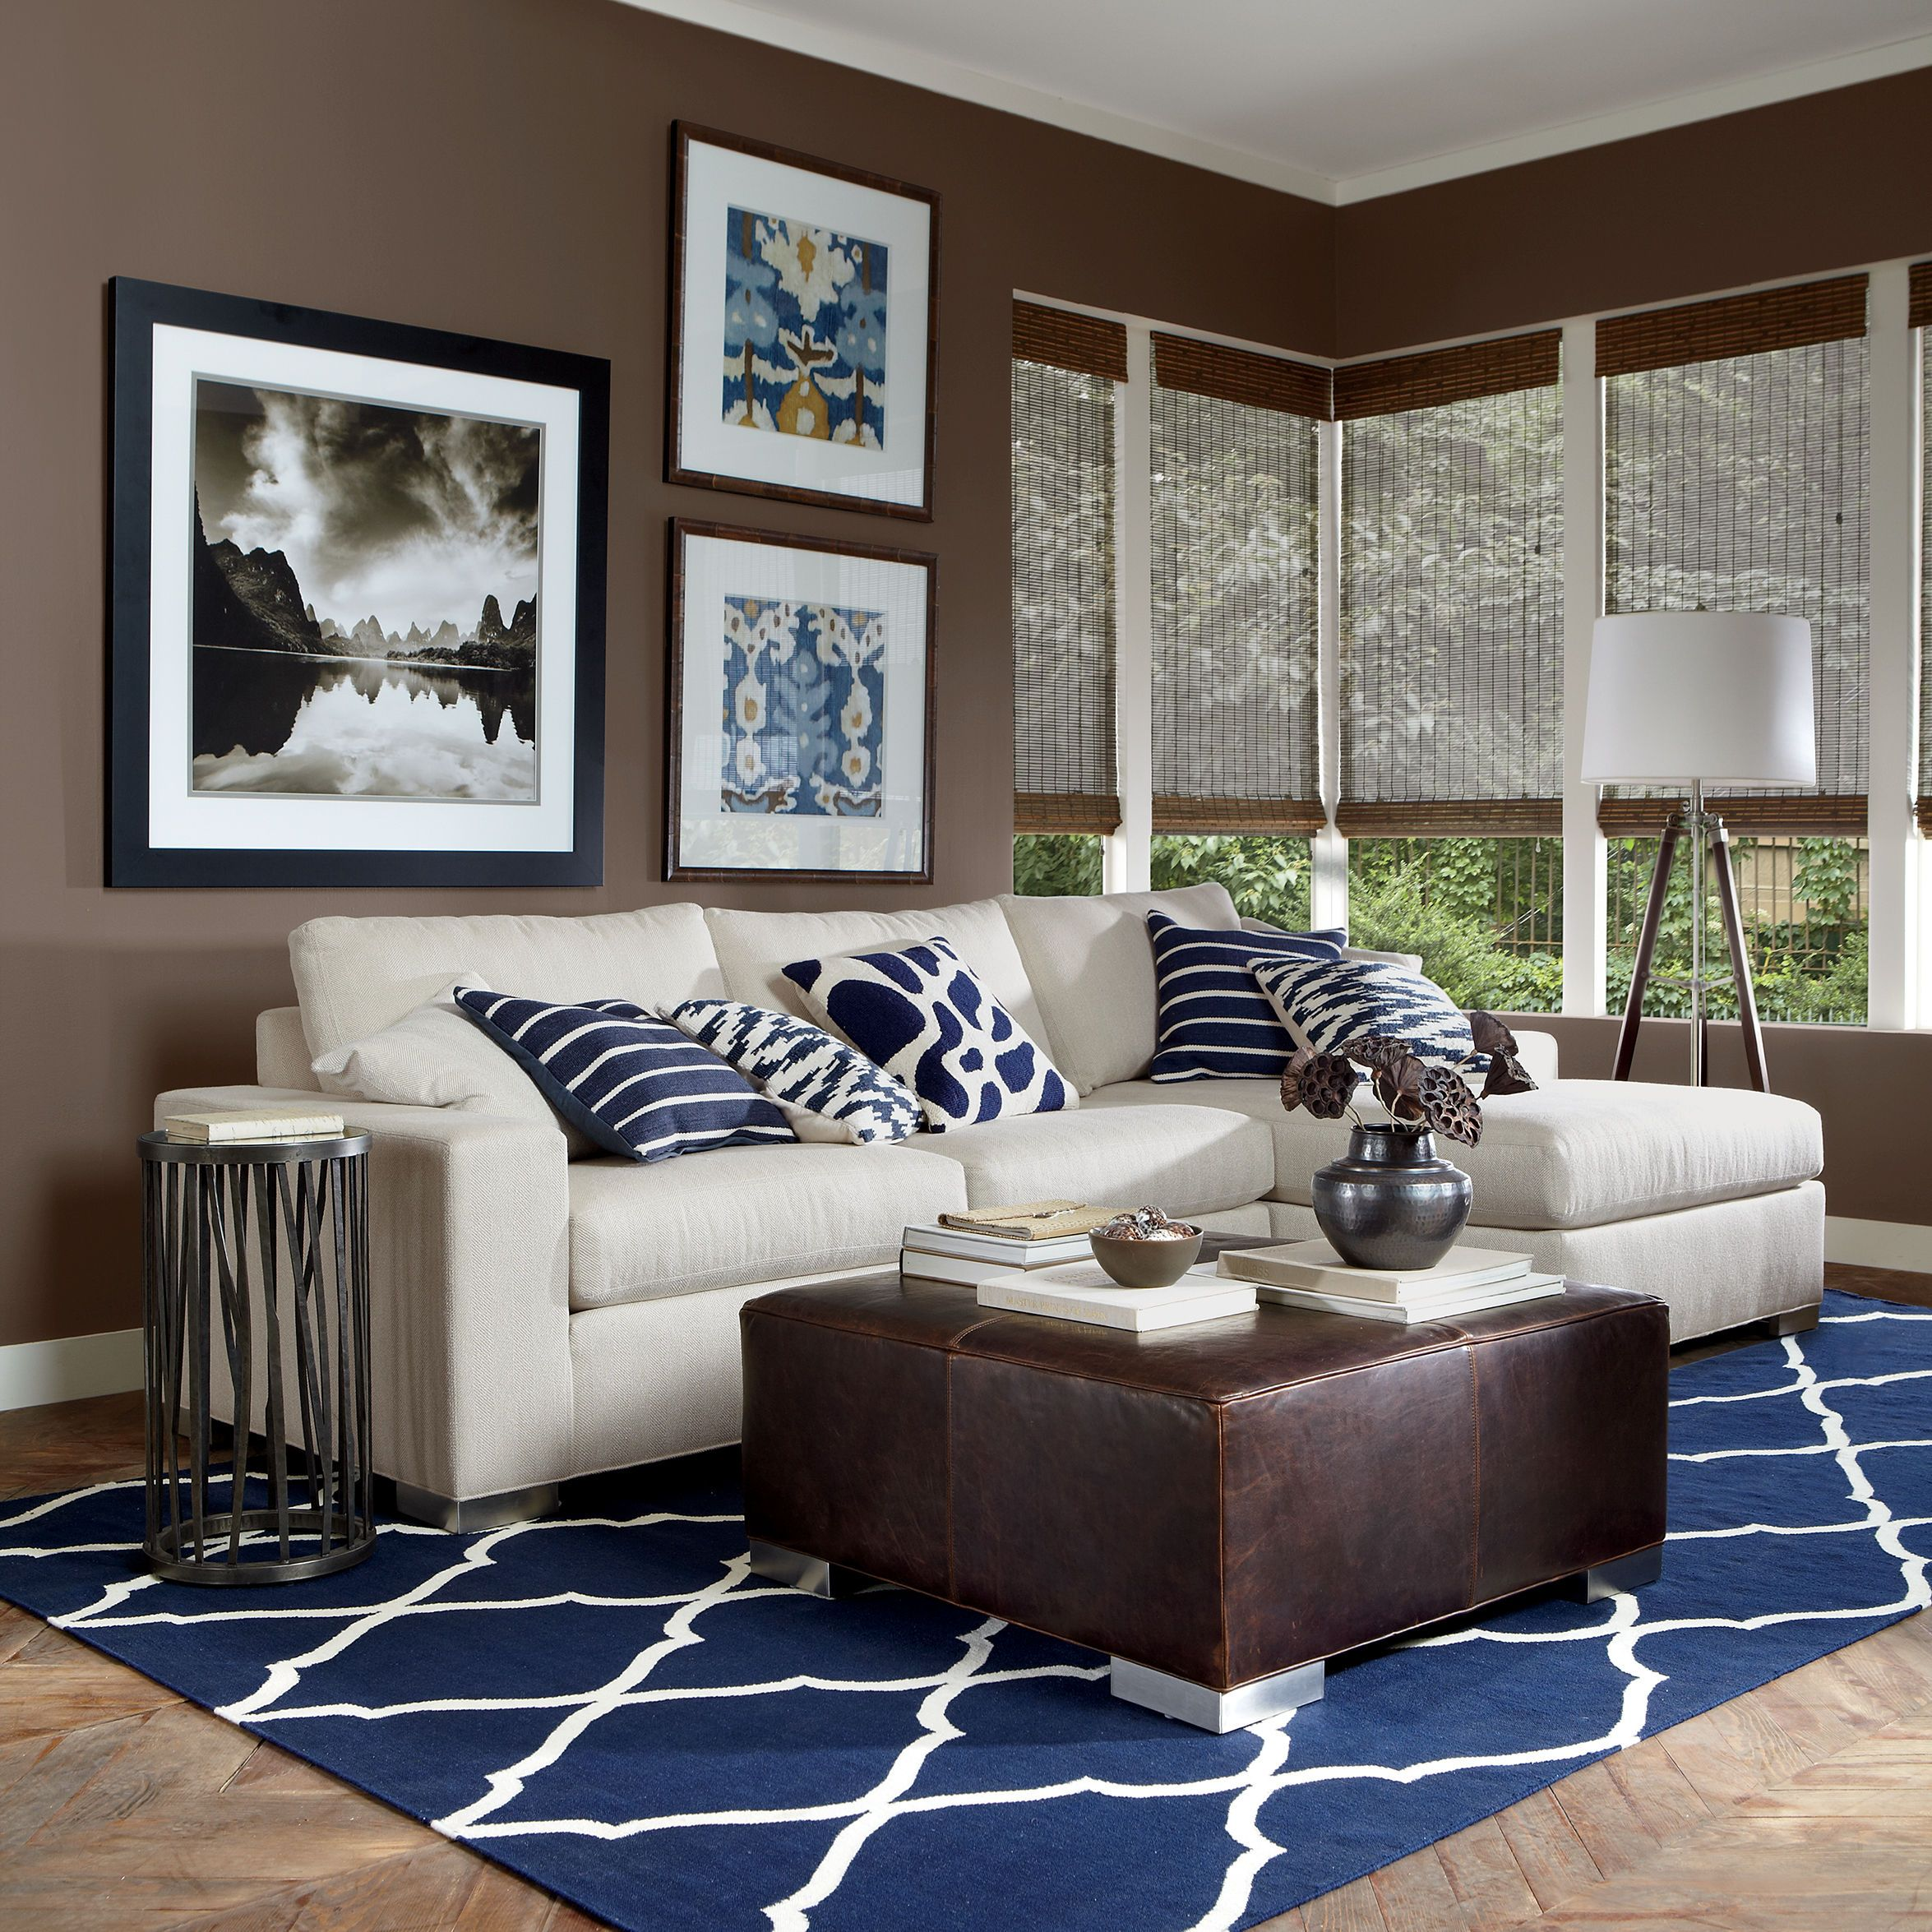 Blue living room design ideas - Ethan Allen Living Room Blue Living Rooms